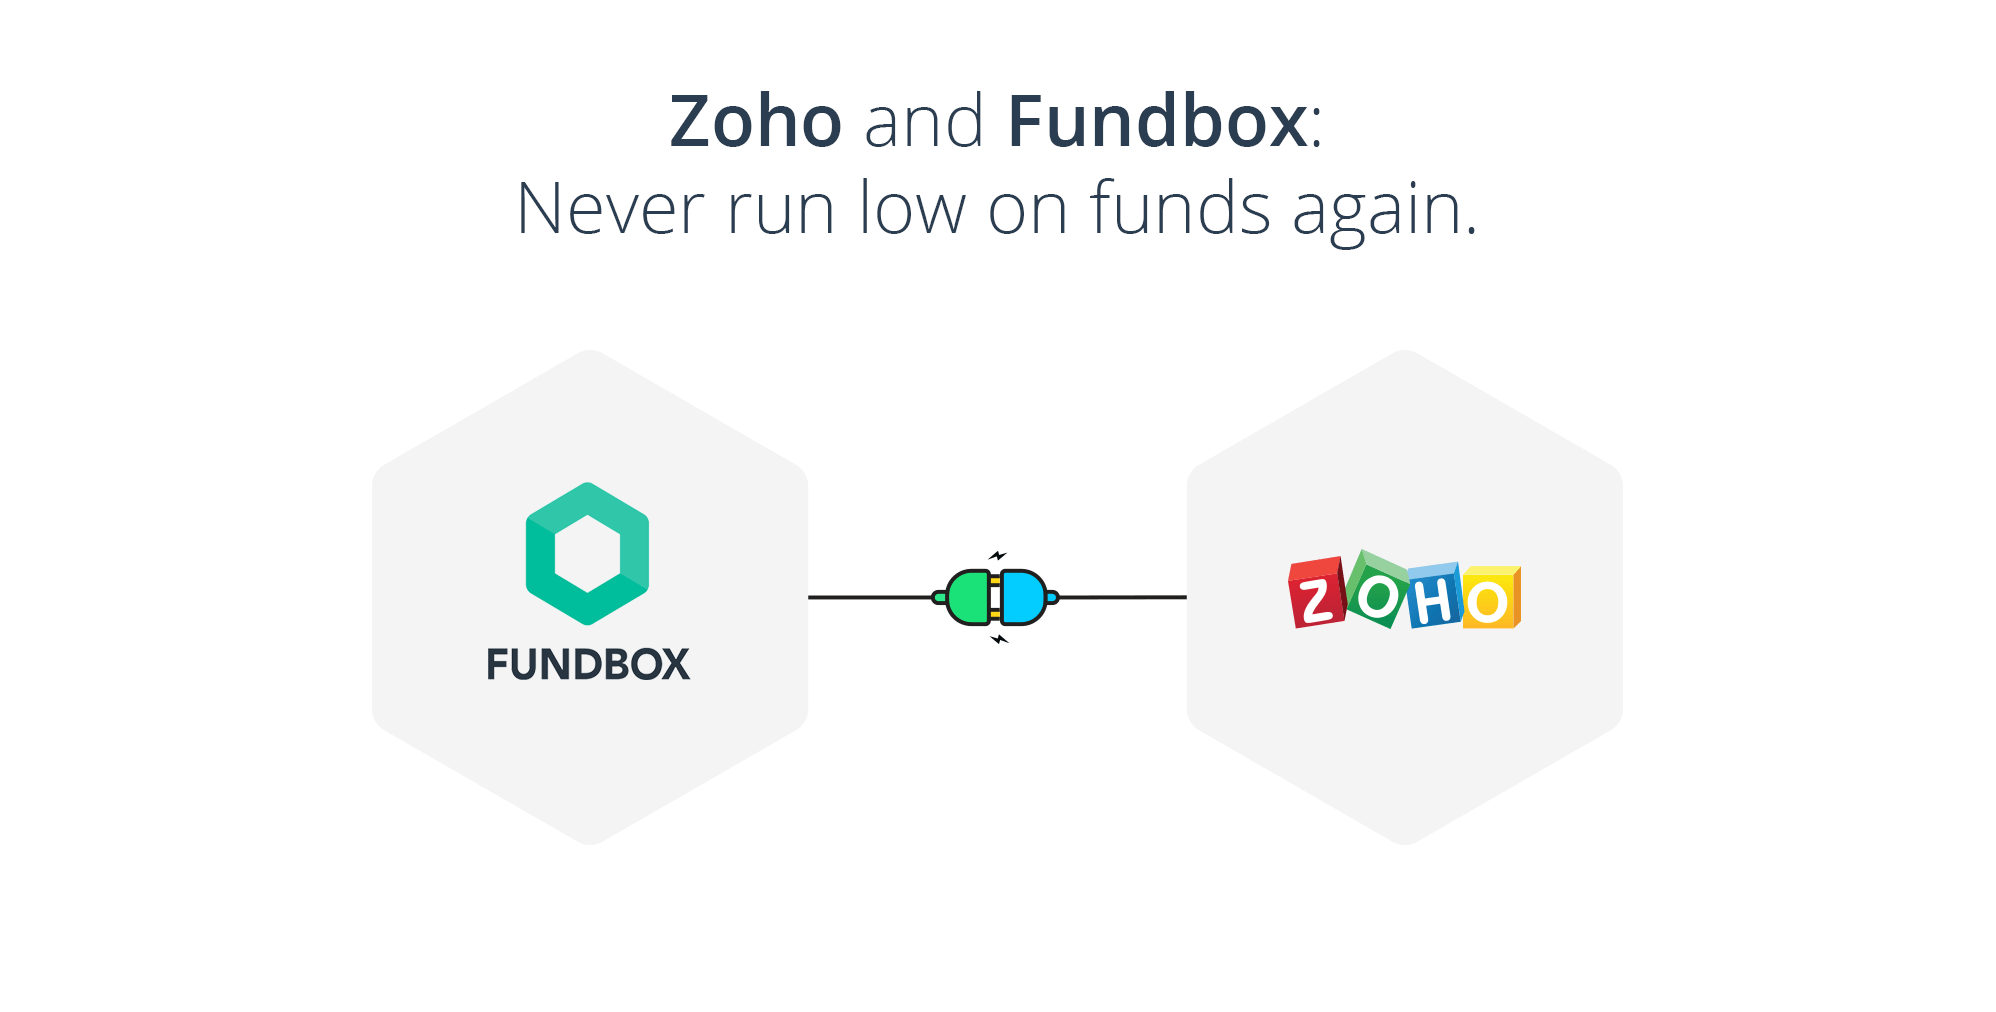 Zoho and Fundbox: Never run low on funds again. 